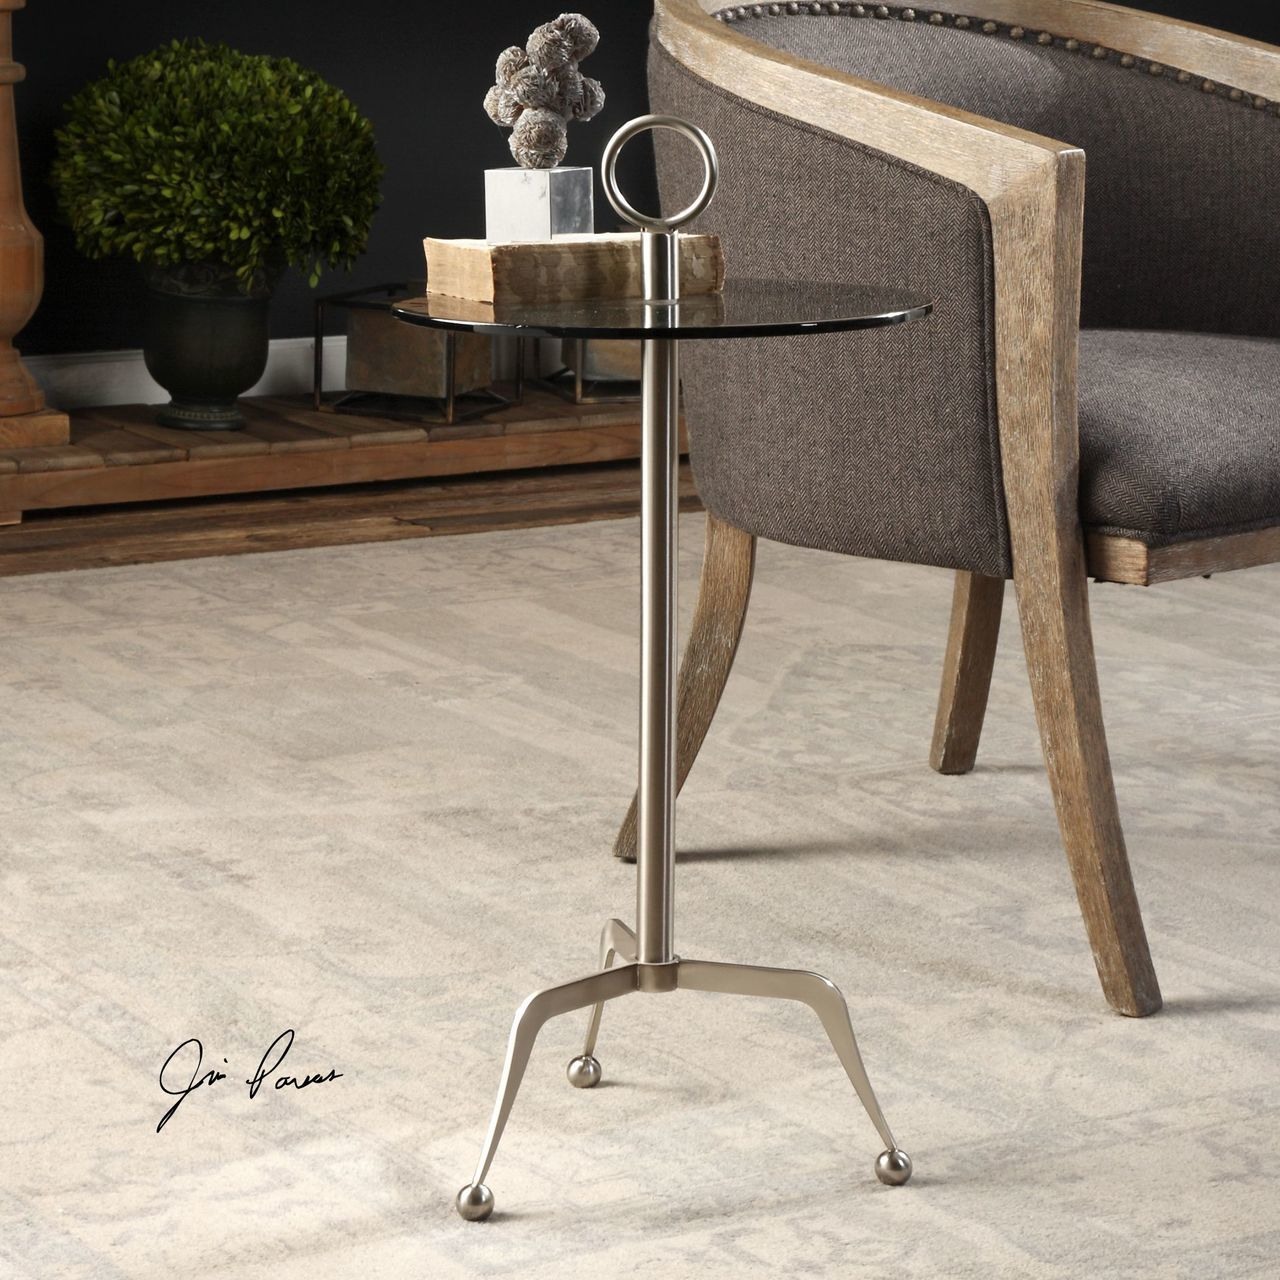 uttermost astro stainless steel accent table rug fashion jinan small kitchen with storage best placemats for wood bistro tablecloth round patio umbrella hole square acrylic coffee